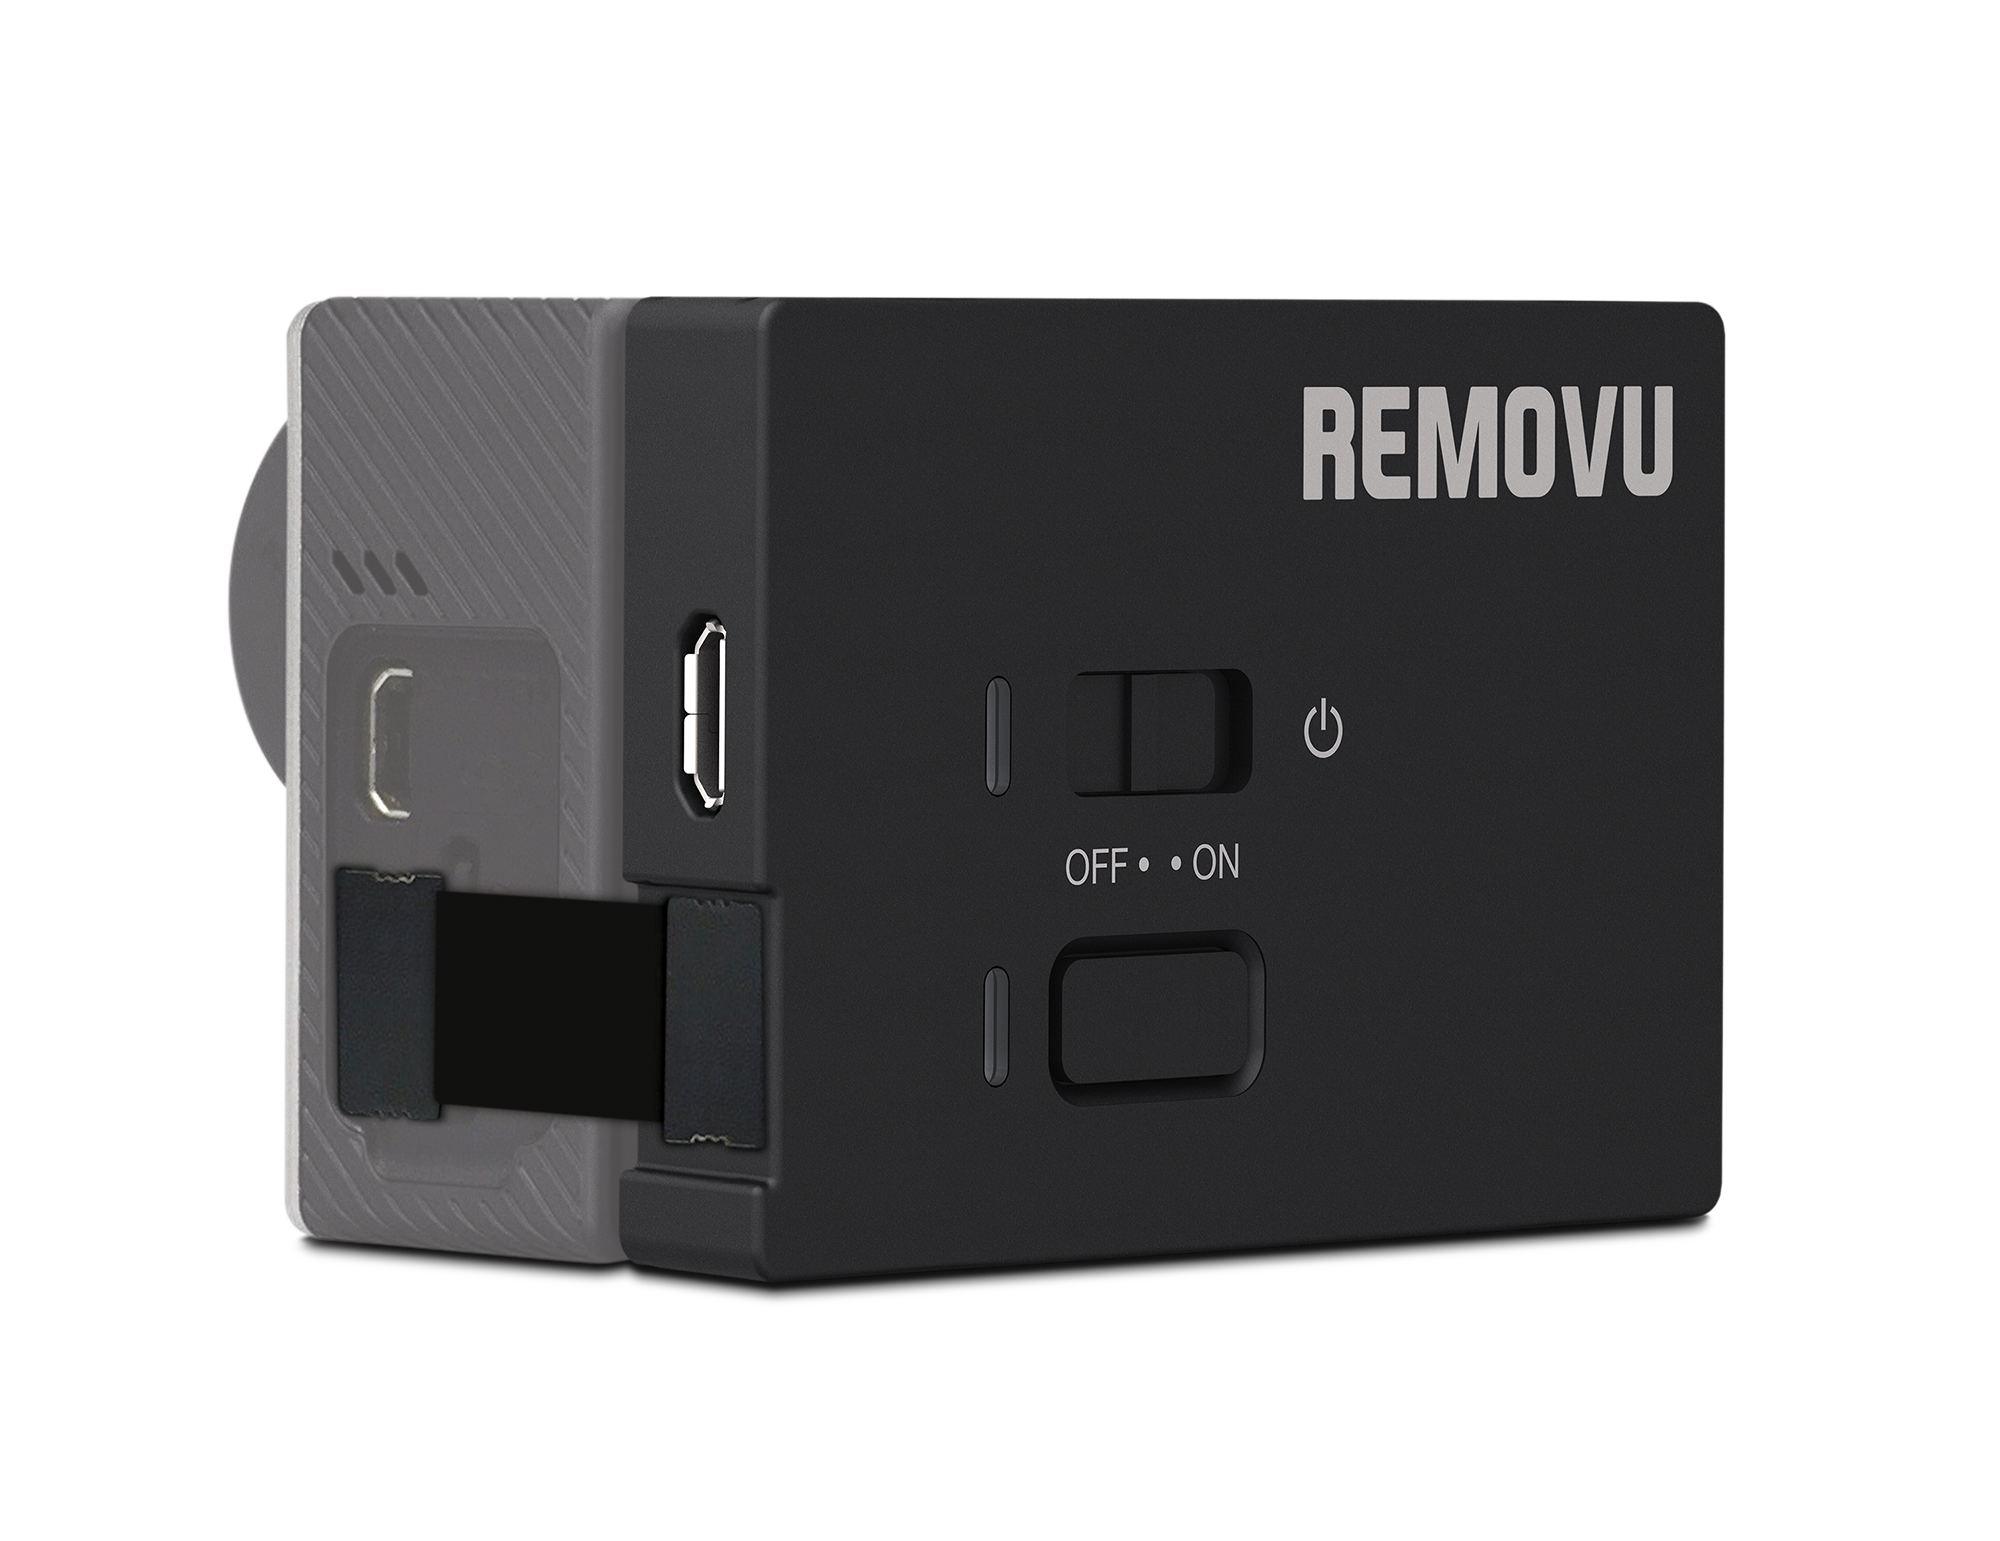 REMOVU A1 - The M1 records high quality sounds.It fits perfectly into a standard BackPac GoPro housing.